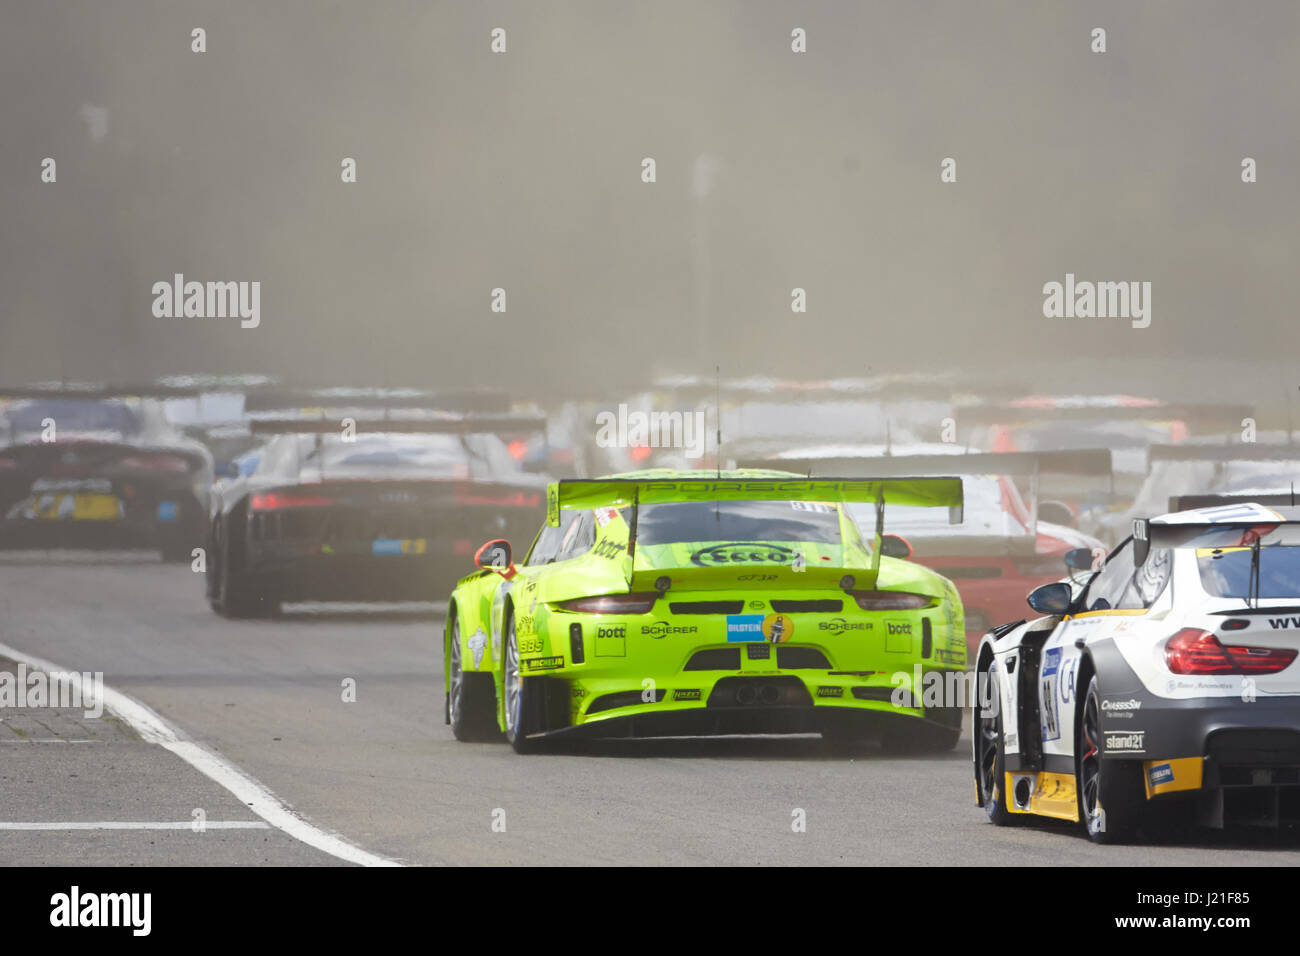 Nuerburg germany 23rd apr 2017 view of the qualification race for the